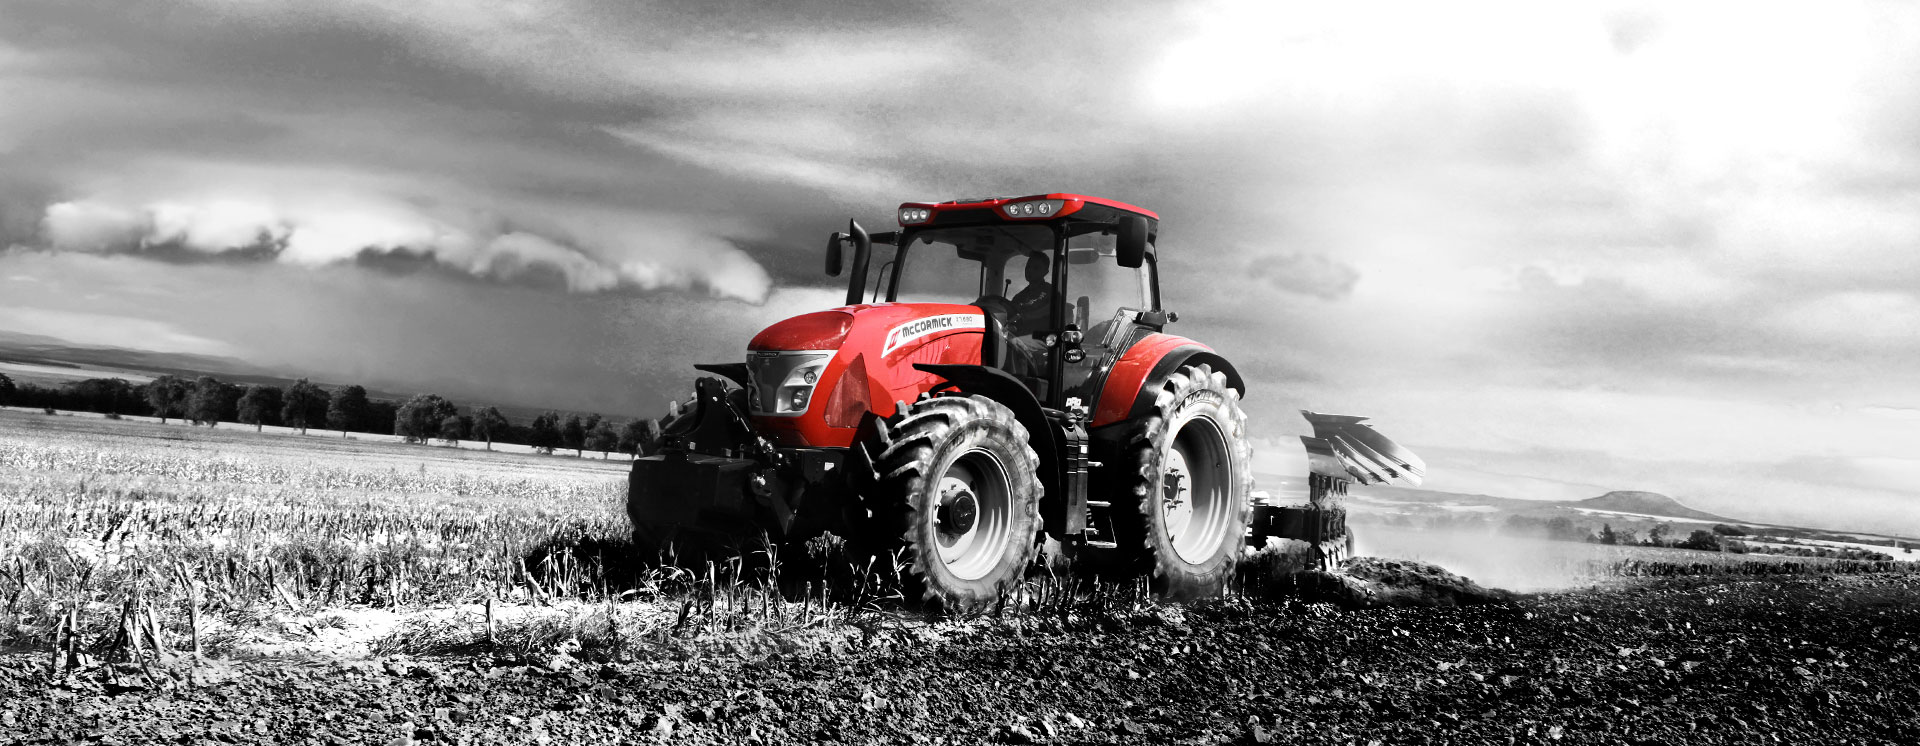 McCormick tractor working in a field